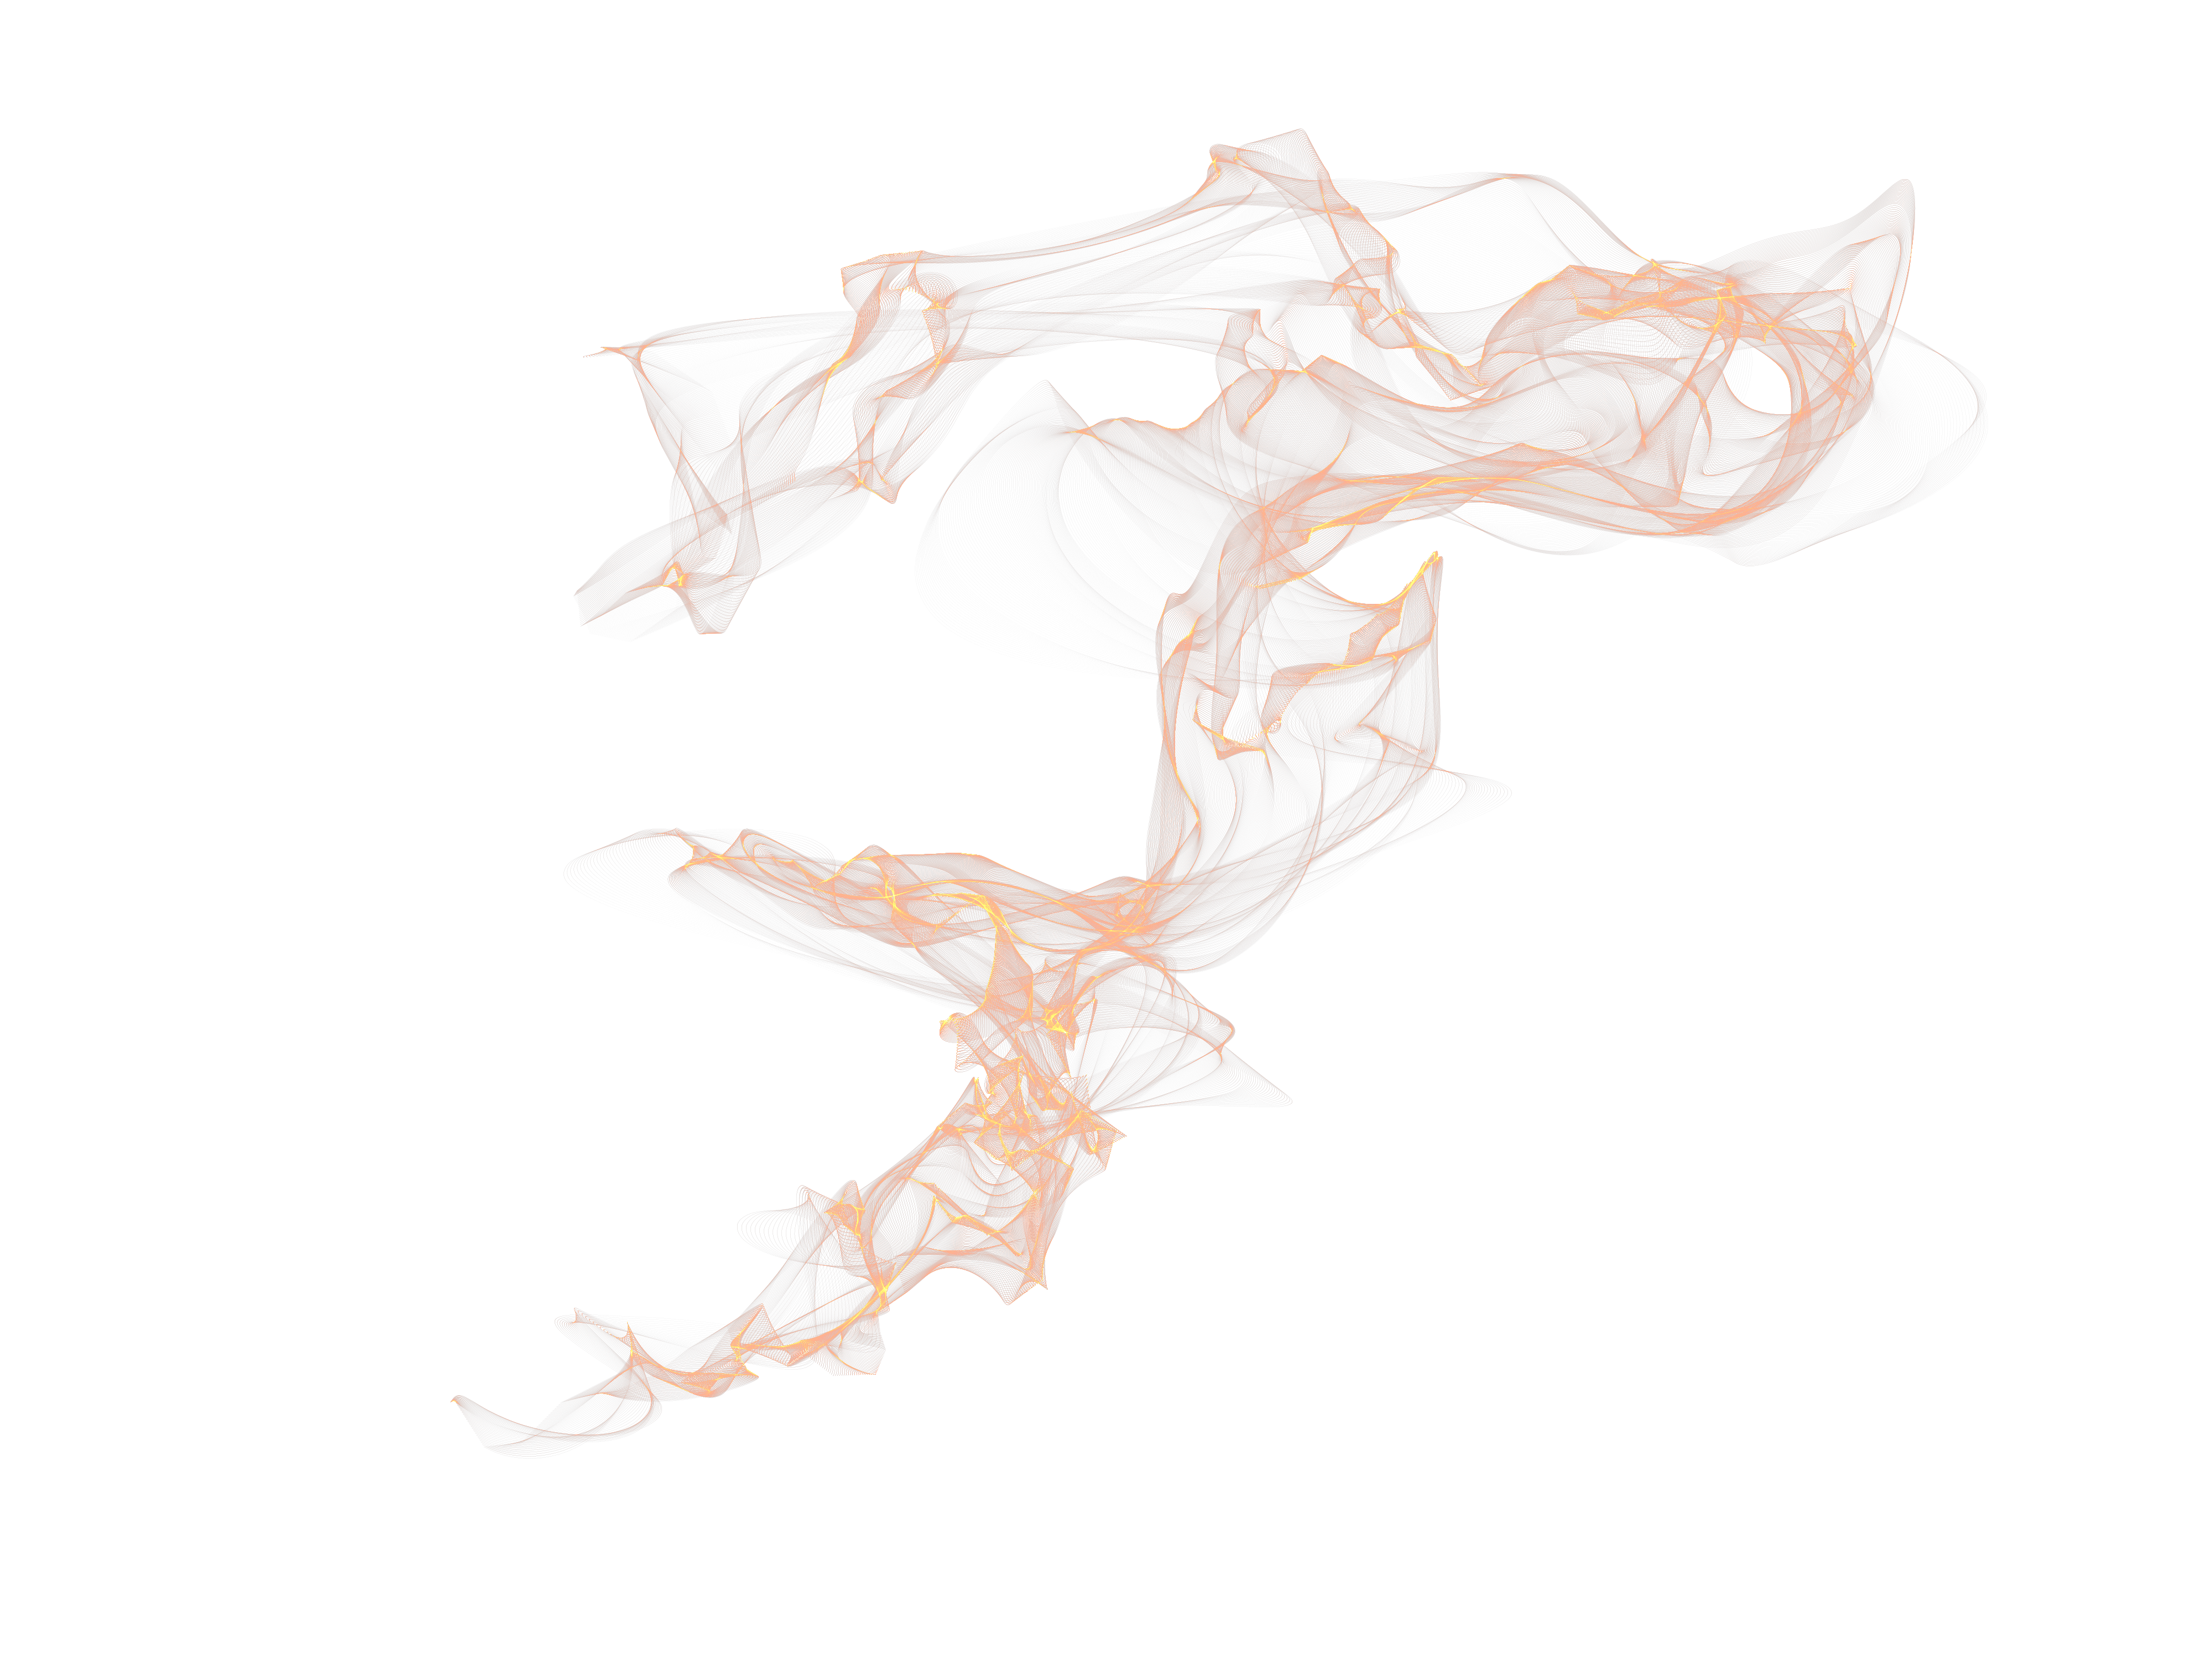 Color flame png. Smoke and by headcat